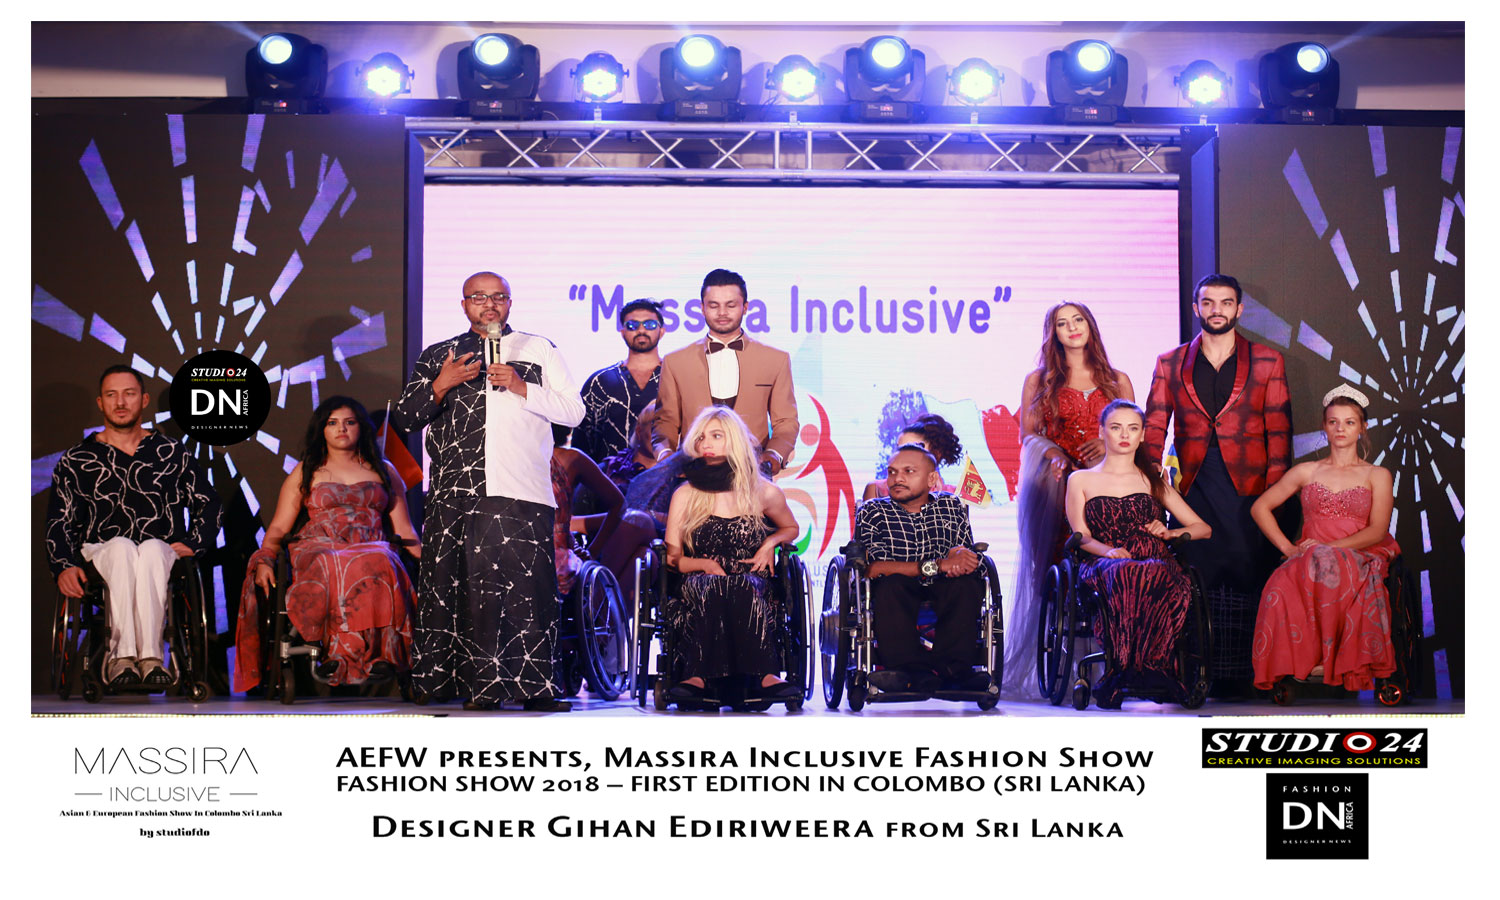 AAFRICAN FASHION STYLE MAGAZINE -MASSIRA Inclusive Colombo Sri Lanka -MASSIRA-Gihan-Ediriweera- - President Fernando Rex - Organization of event: Nawel Benzaouia - Media Partner DN MAG, DN AFRICA -STUDIO 24 NIGERIA - STUDIO 24 INTERNATIONAL